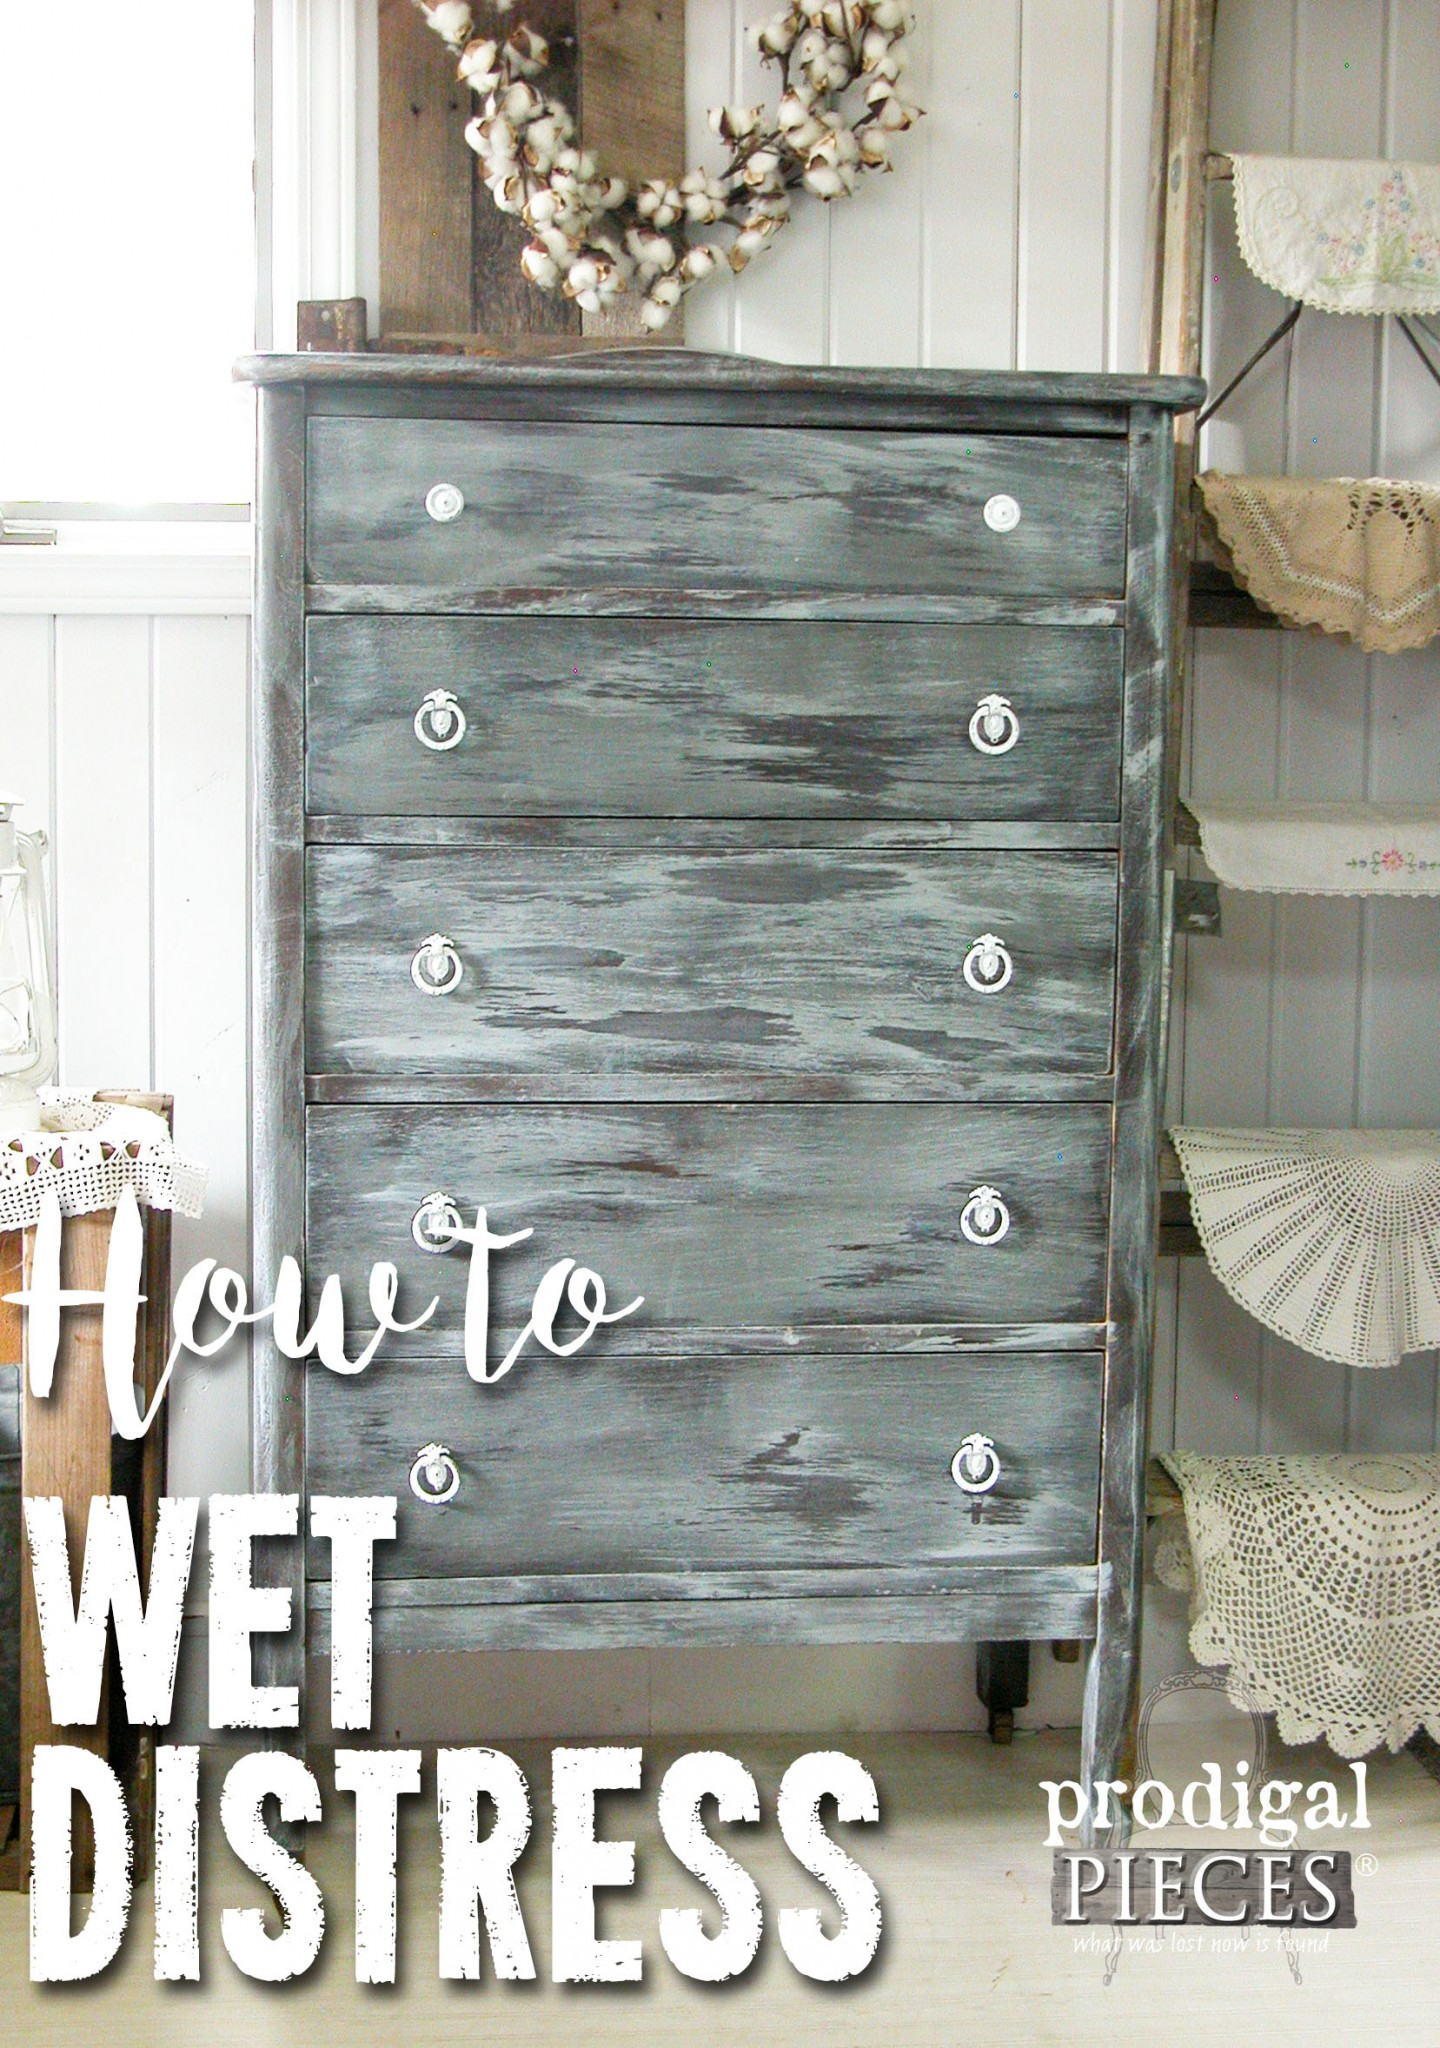 How to Wet Distress Paint with Tutorial by Prodigal Pieces | www.prodigalpieces.com